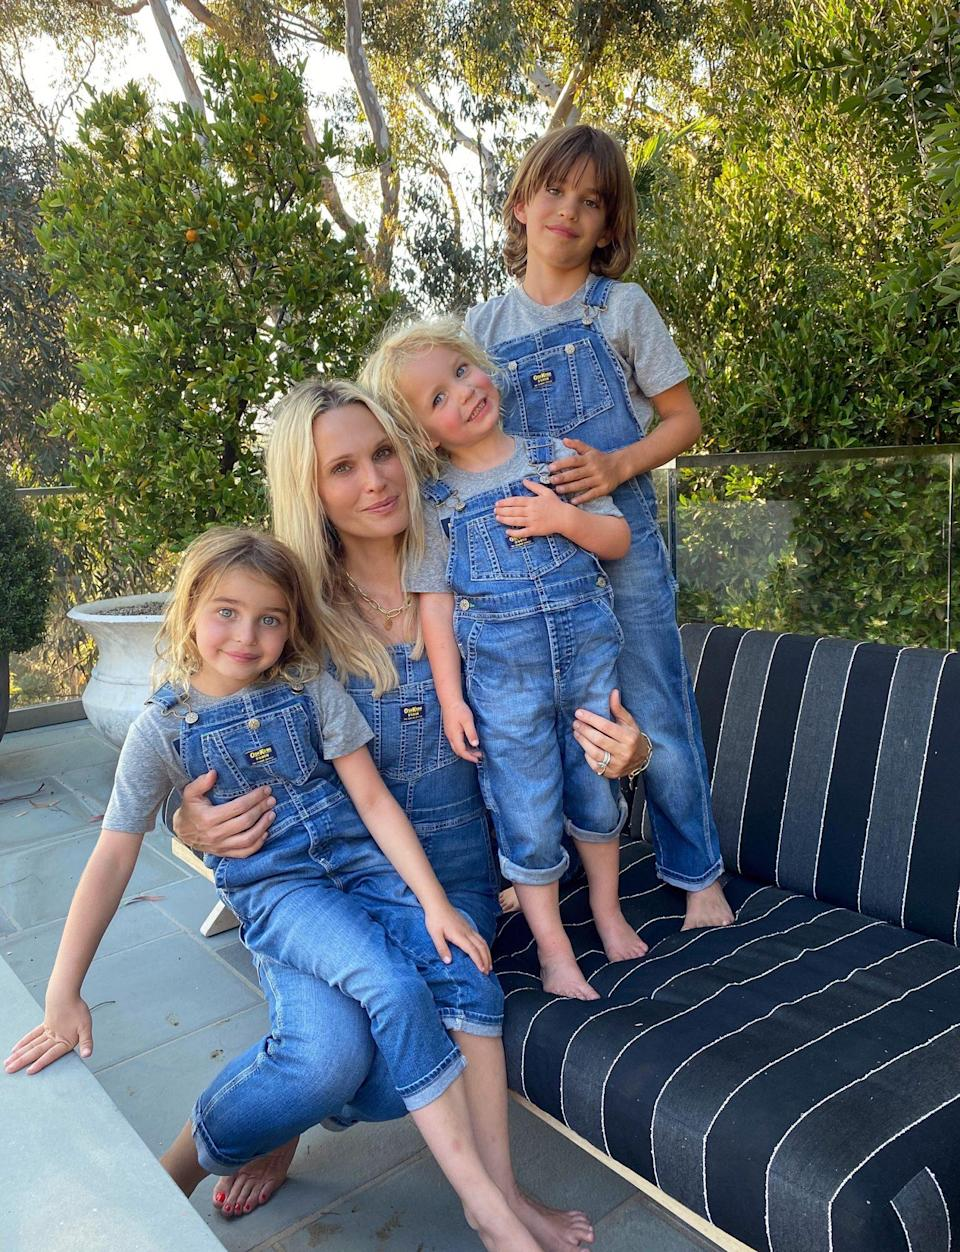 <p>Molly Sims and her kids match in adorable Camp OshKosh limited edition family overalls at home in L.A.</p>